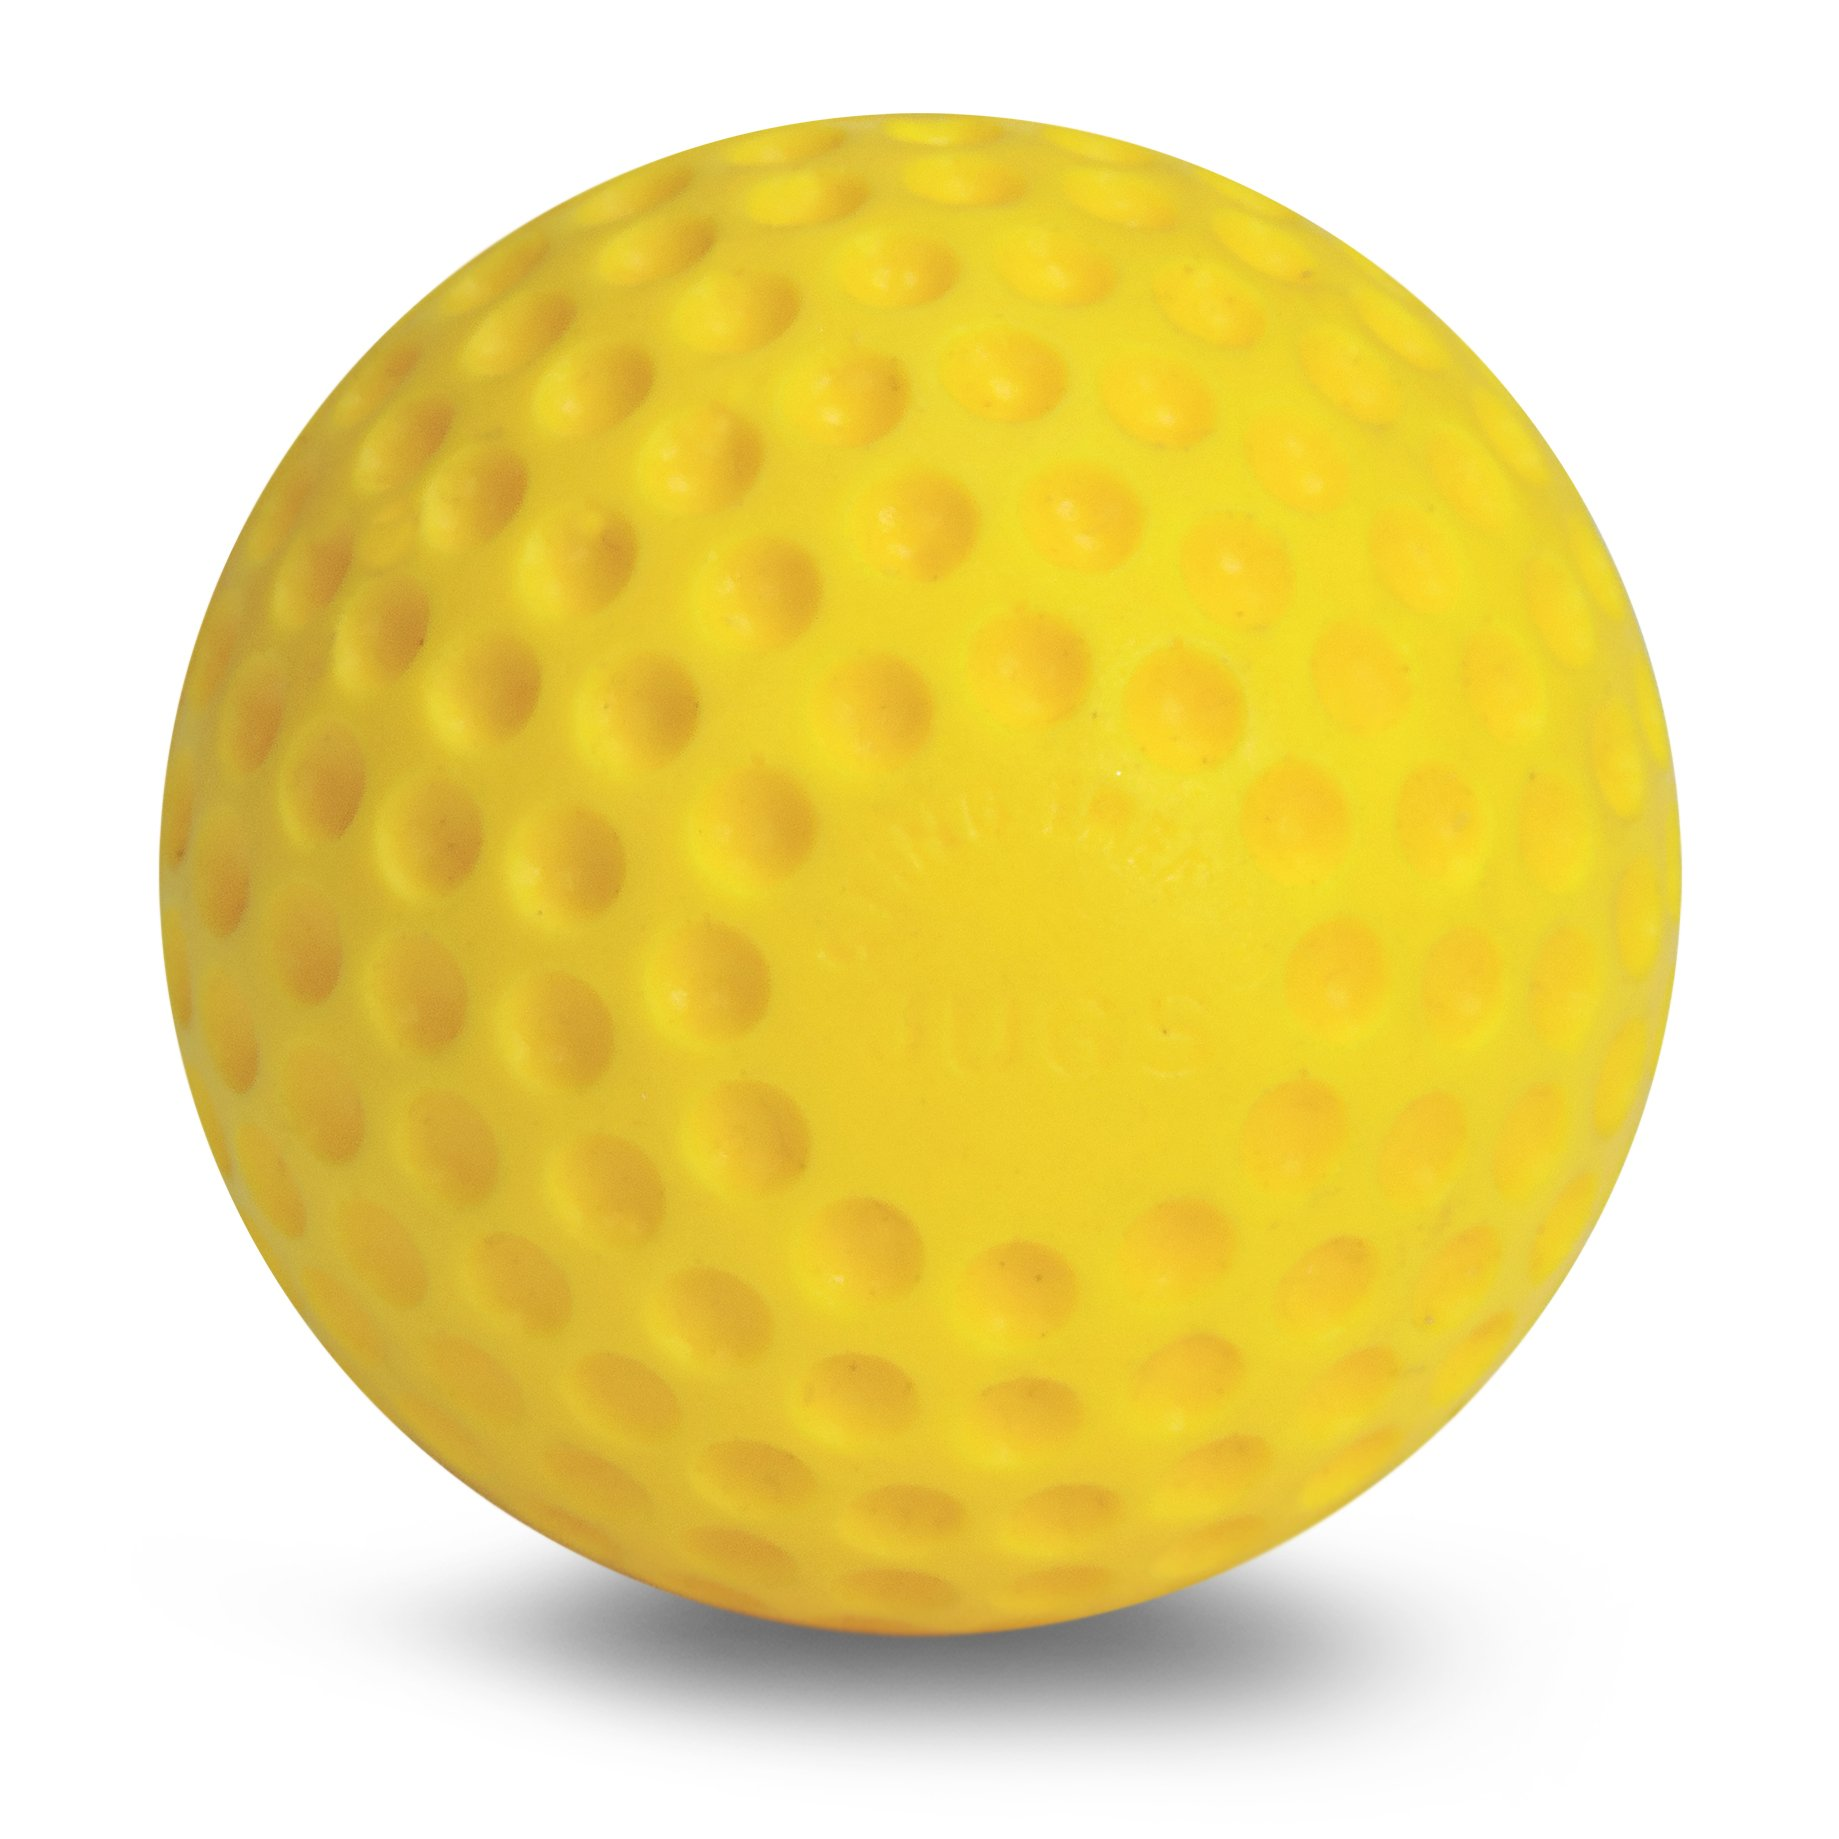 Jugs Yellow Dimpled Baseballs, 9-Inch, One Dozen